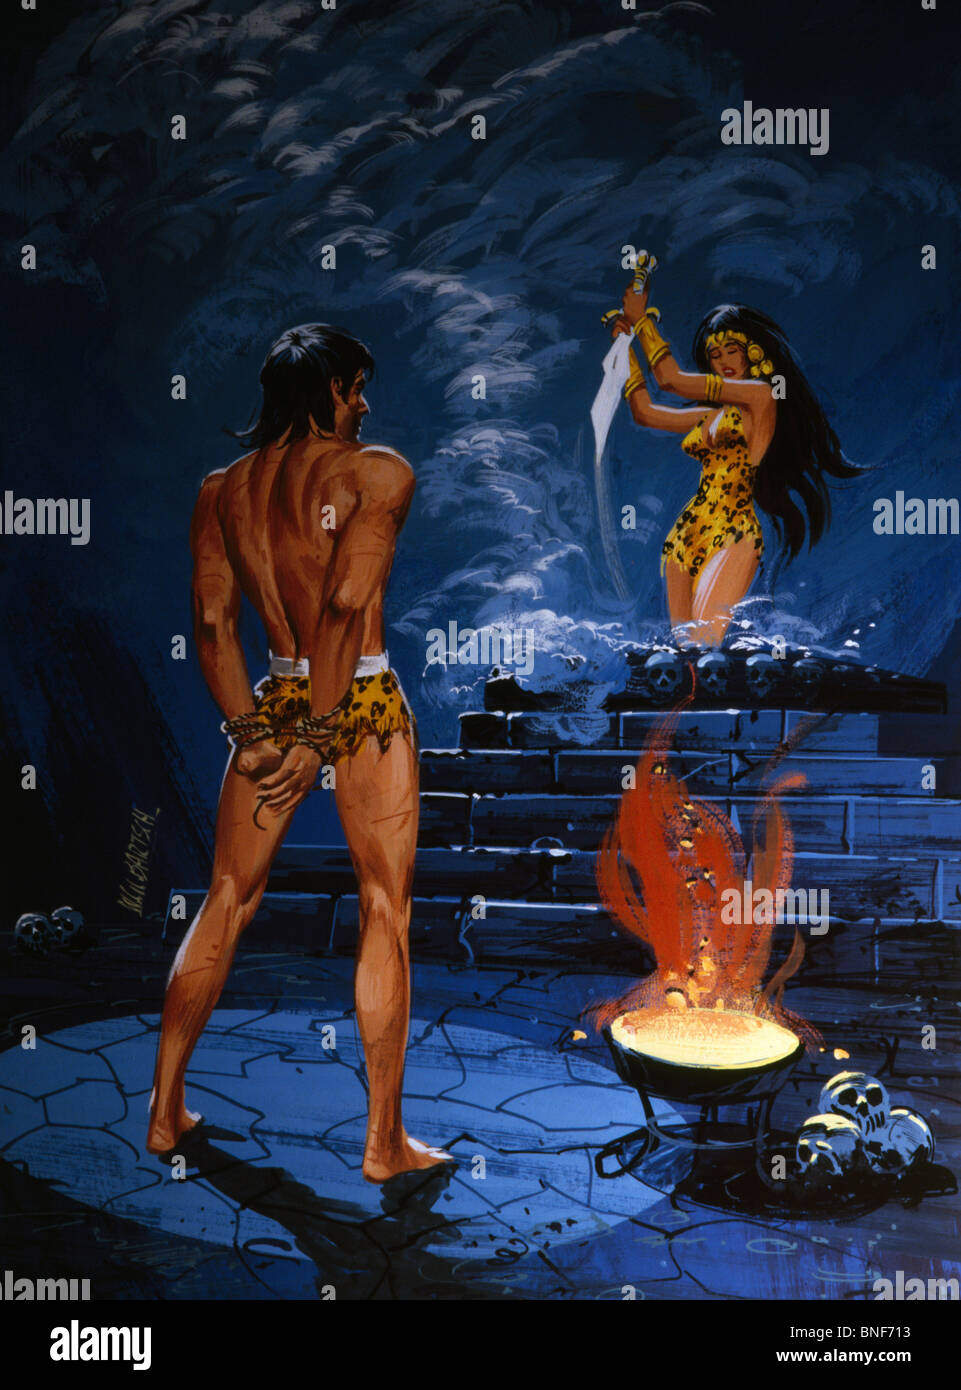 Tide-up Tarzan standing in front of priestess holding sword, illustration - Stock Image